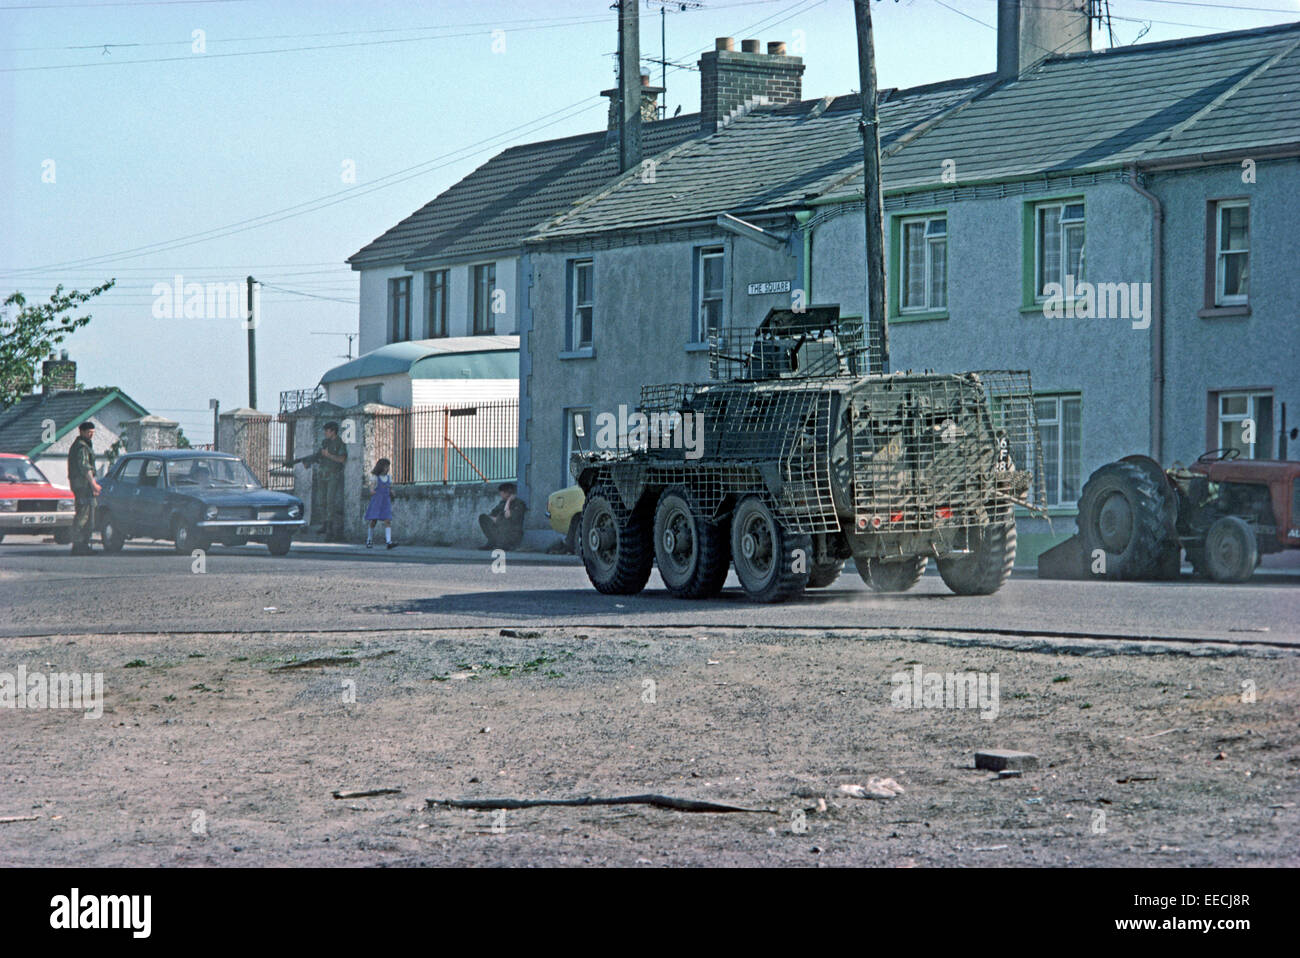 http://c7.alamy.com/comp/EECJ8R/crossmaglen-northern-ireland-june-1977-british-army-on-patrol-with-EECJ8R.jpg